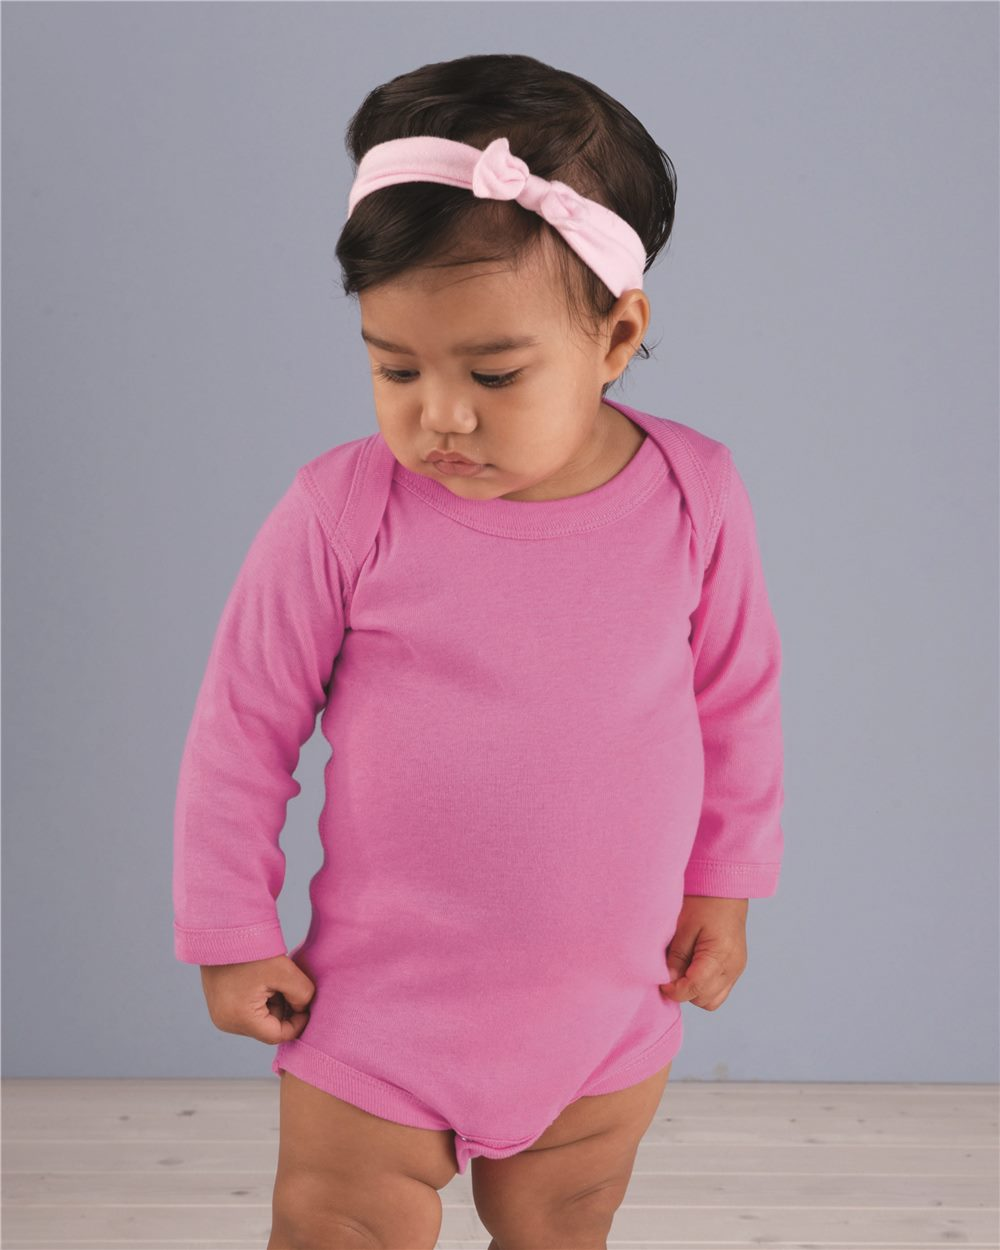 Rabbit Skins 4411 Infant Long Sleeve Lap Shoulder Creeper